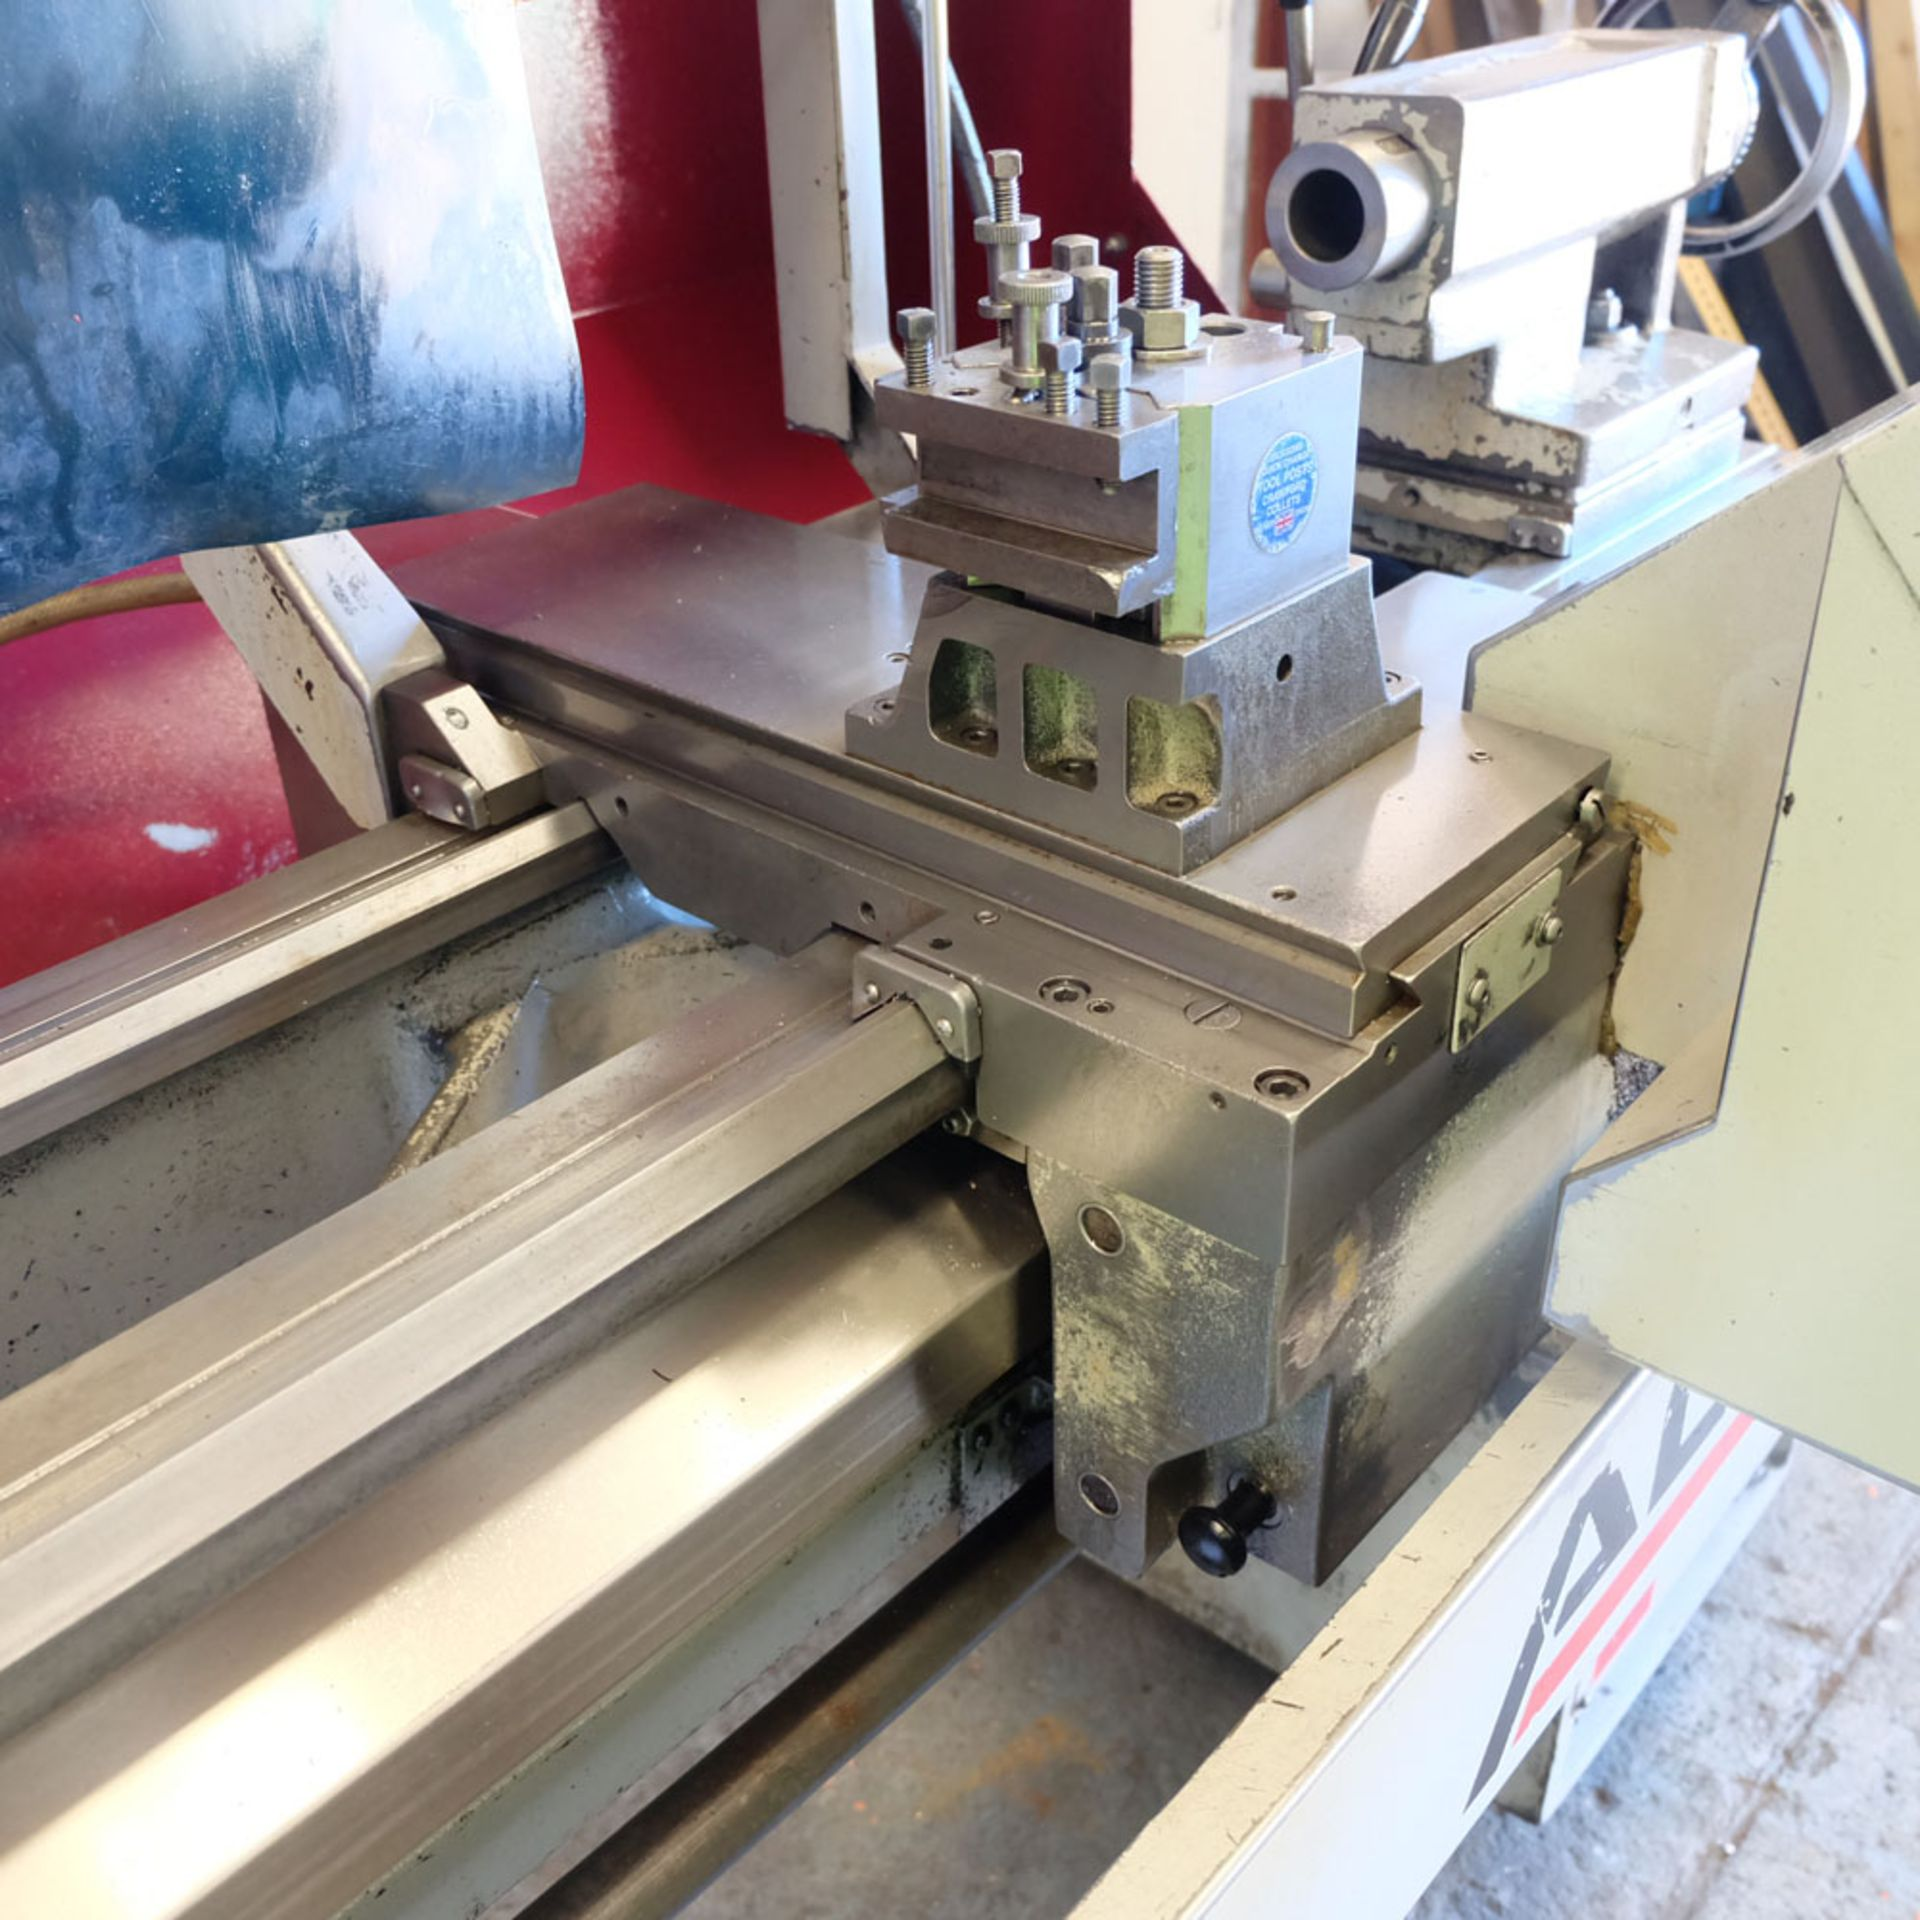 XYZ Proturn 420 Model L480 CNC Lathe with ProtoTrak LX3 Control.Swing Over Bed: 480mm. - Image 6 of 6